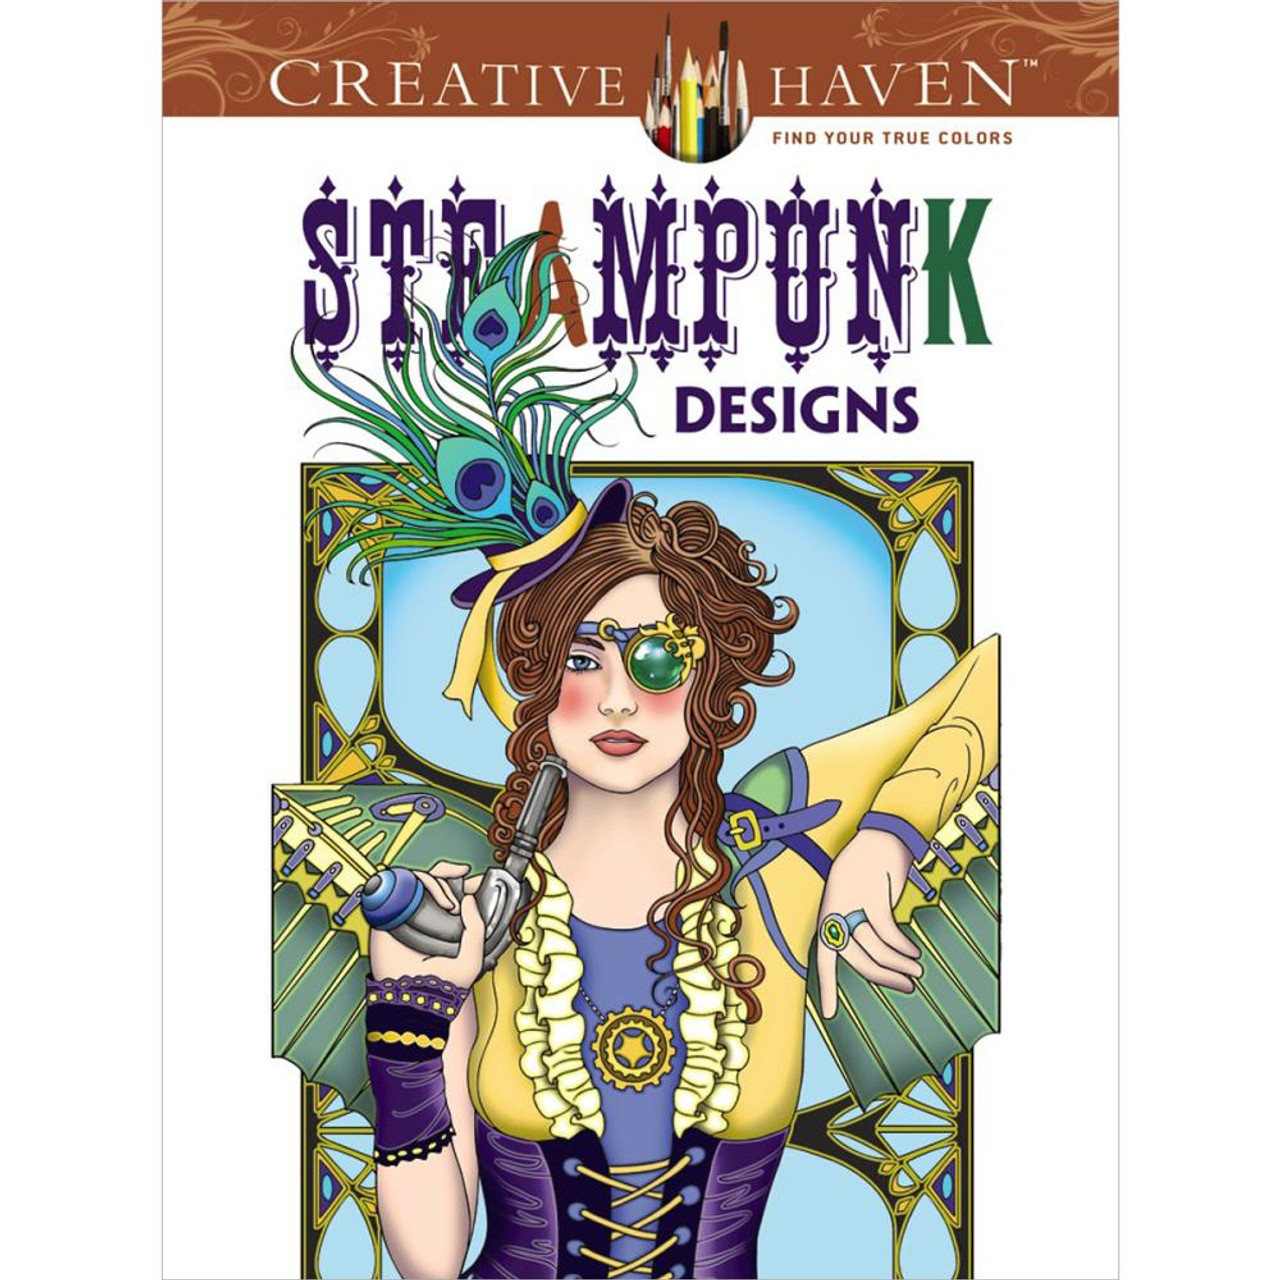 creative haven coloring book steampunk designs - Creative Haven Coloring Books